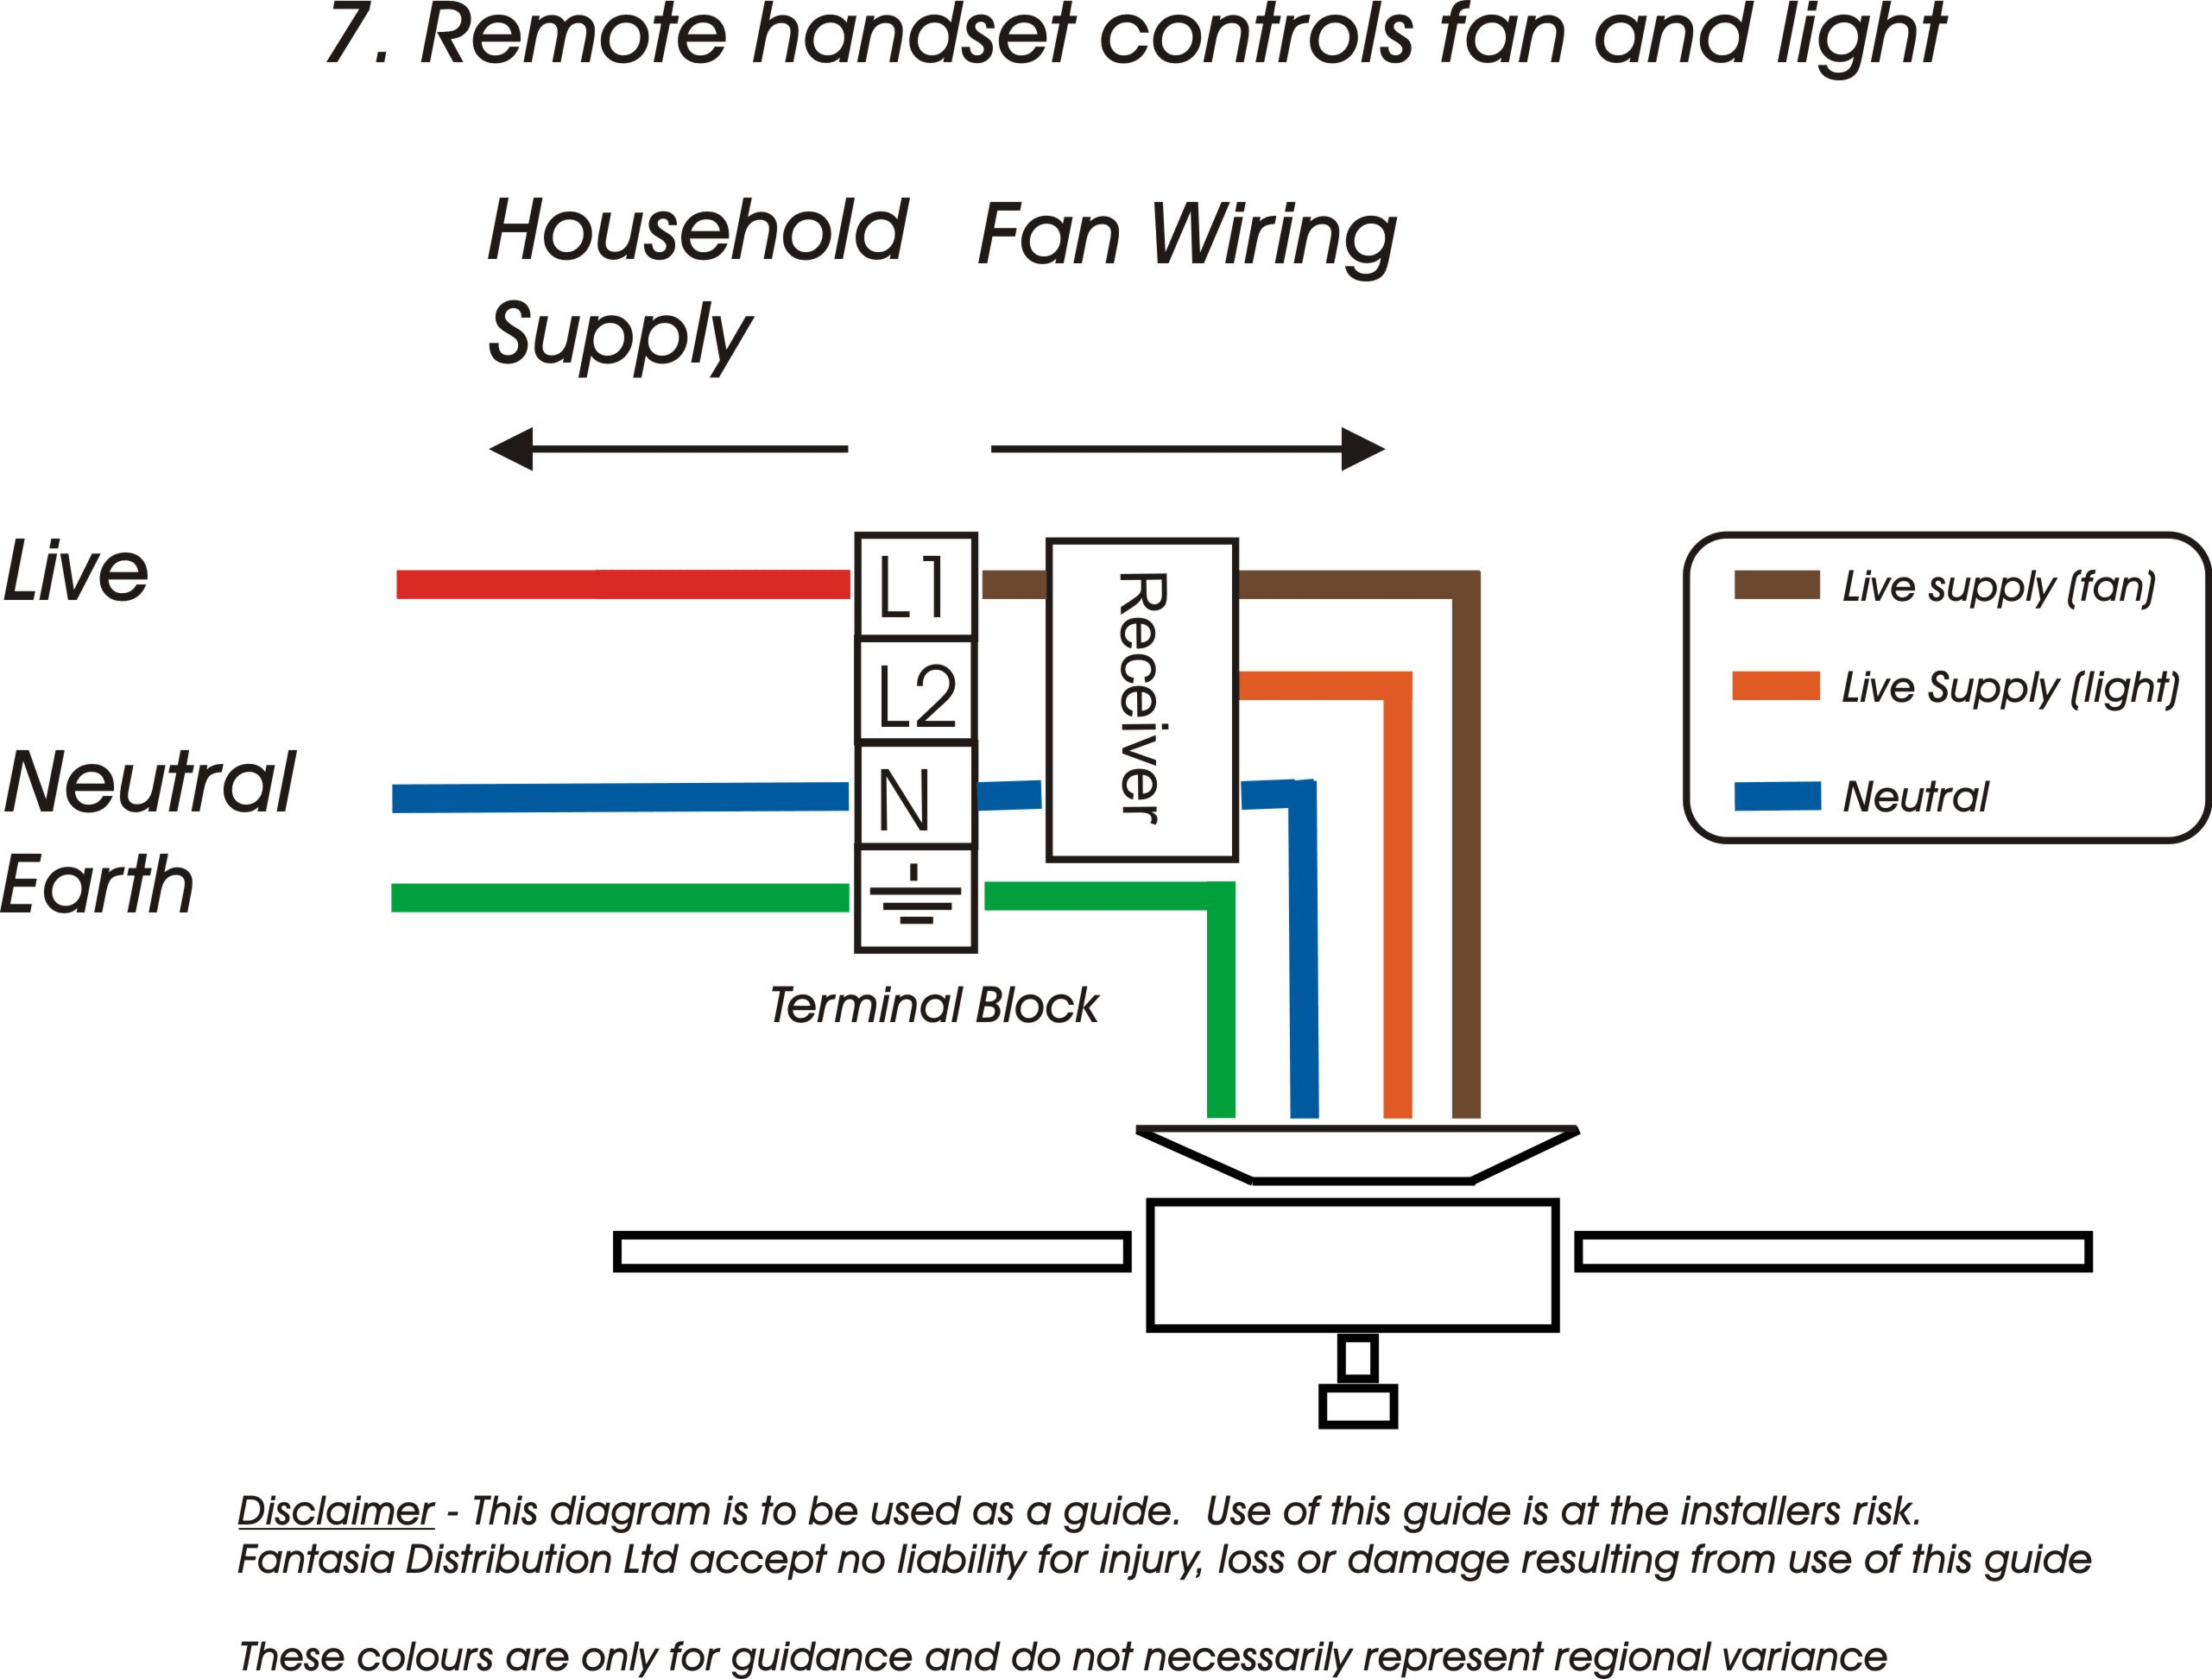 Ceiling Fan Light Internal Wiring Schematic | Wiring Diagram - Ceiling Fan Internal Wiring Diagram